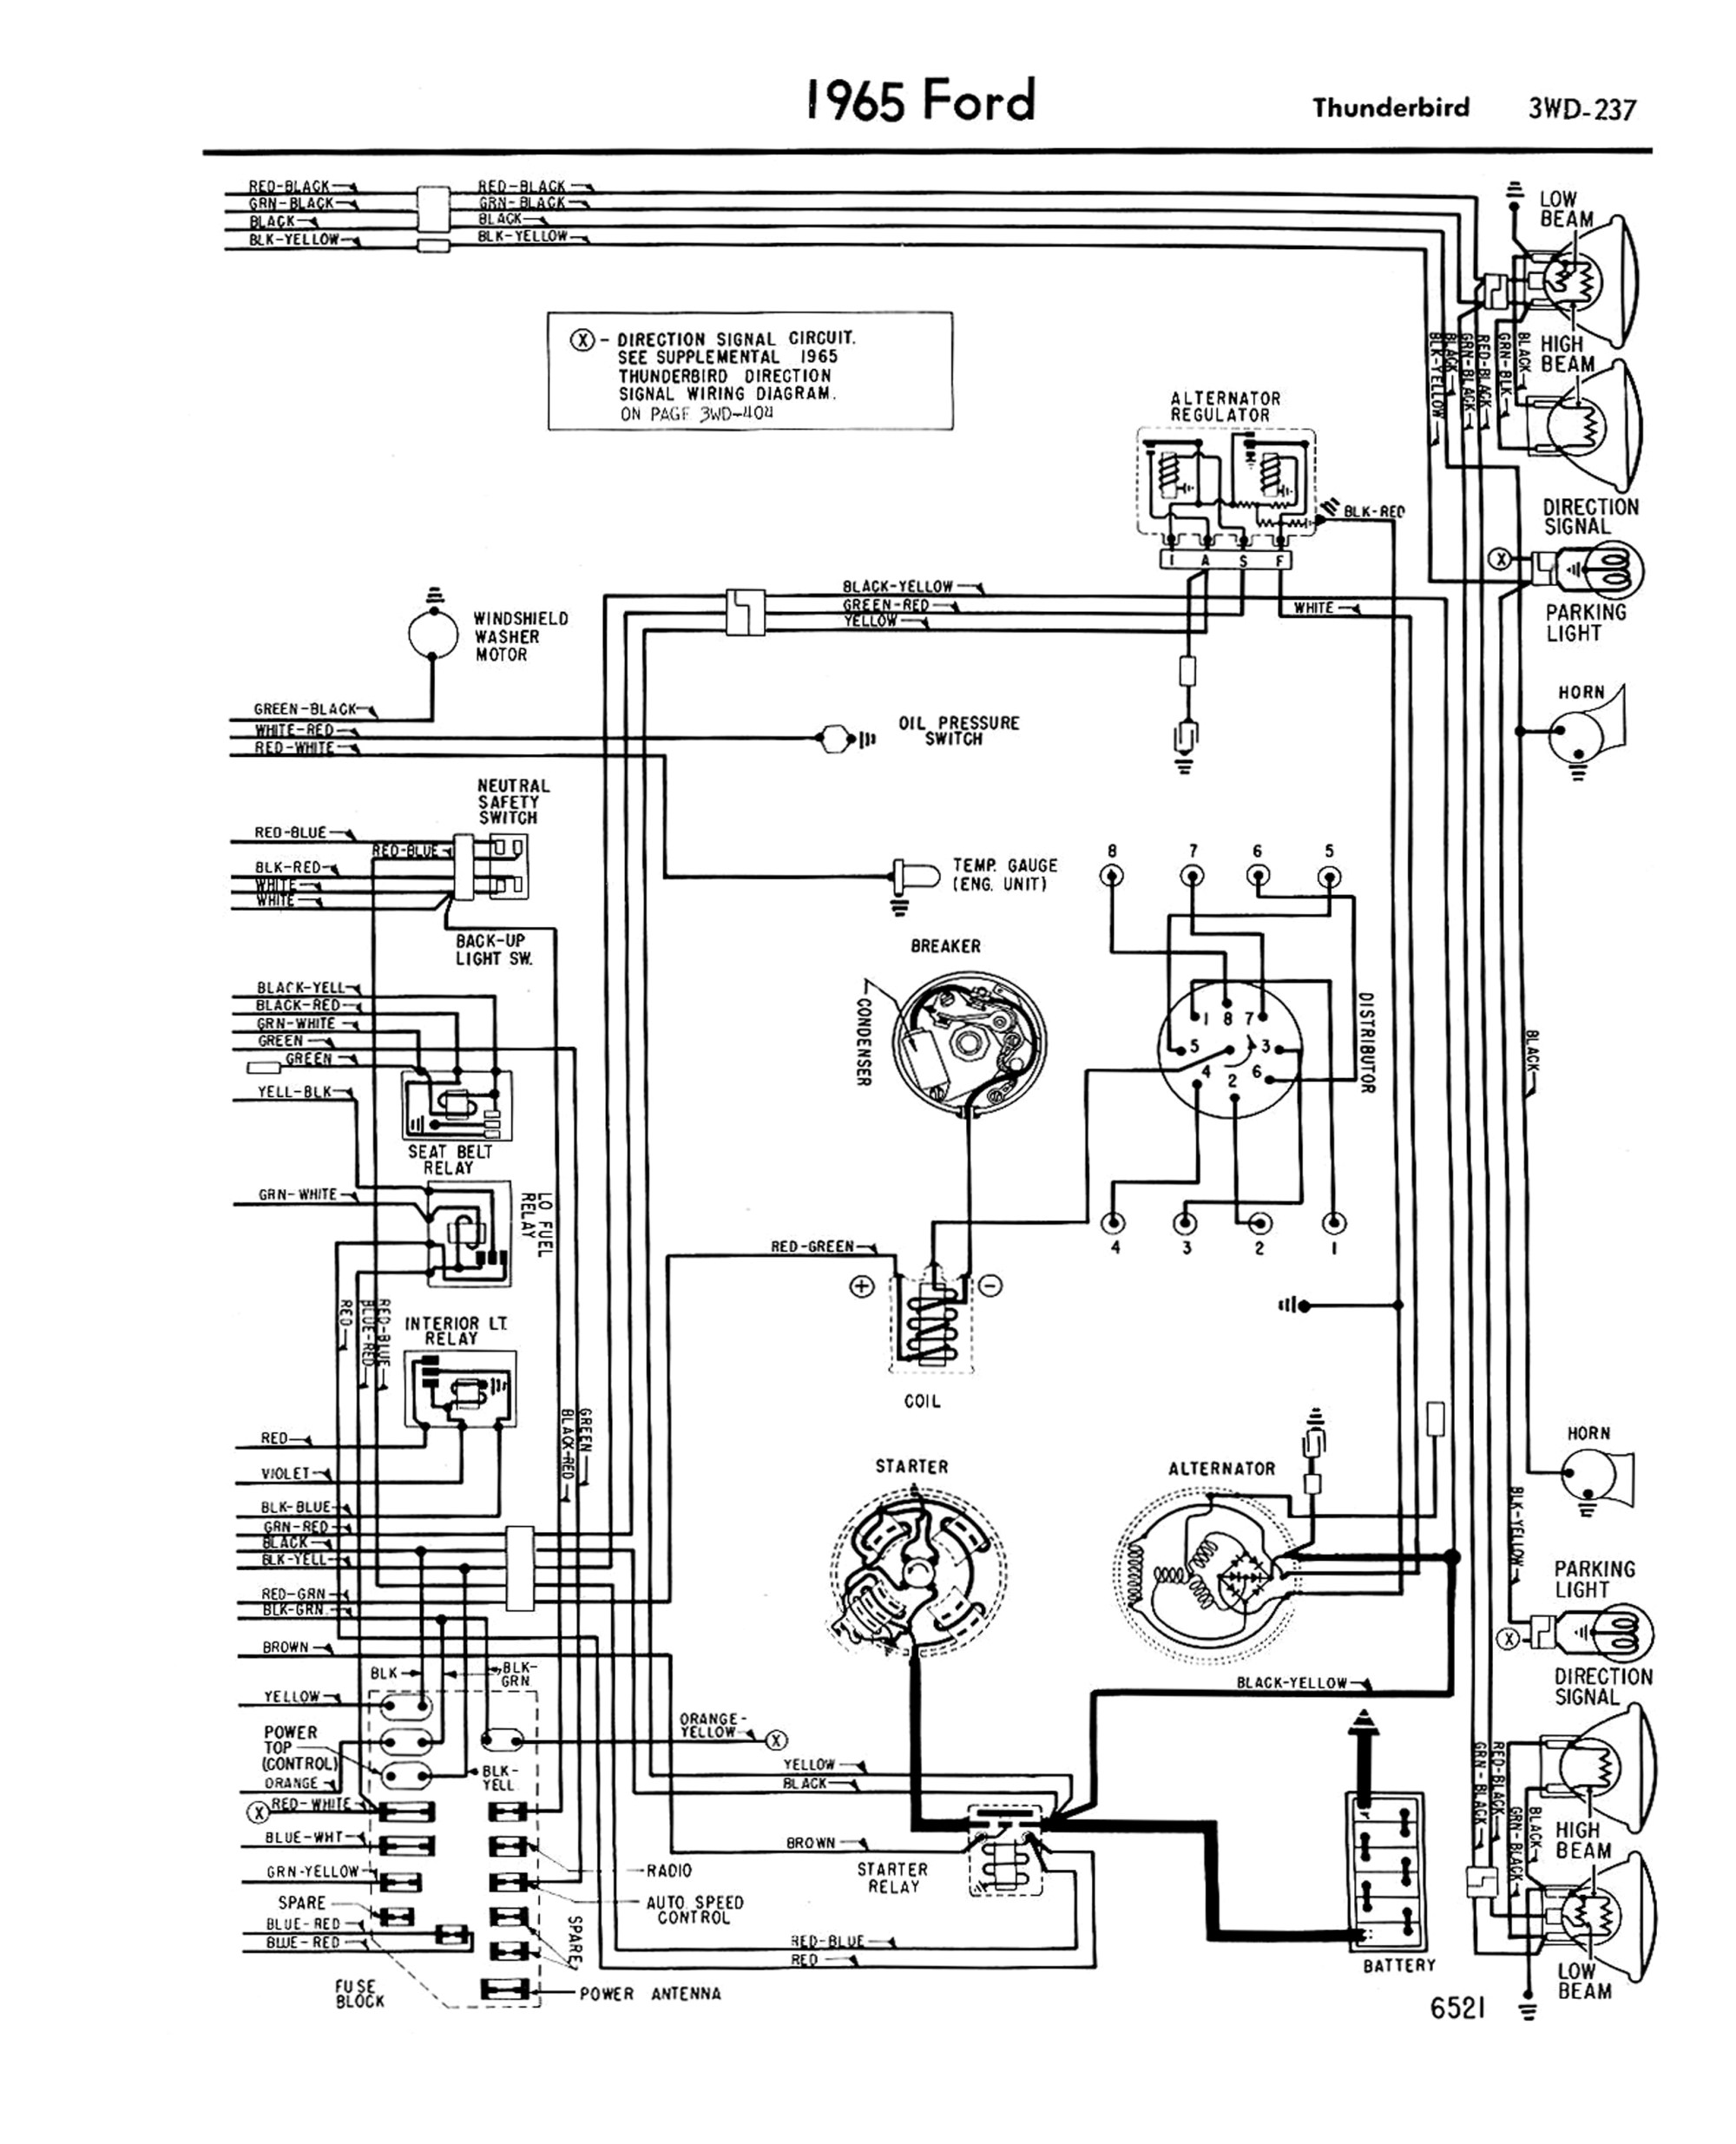 hight resolution of 1958 68 ford electrical schematics rh squarebirds org 1965 ford t bird convertible data plate